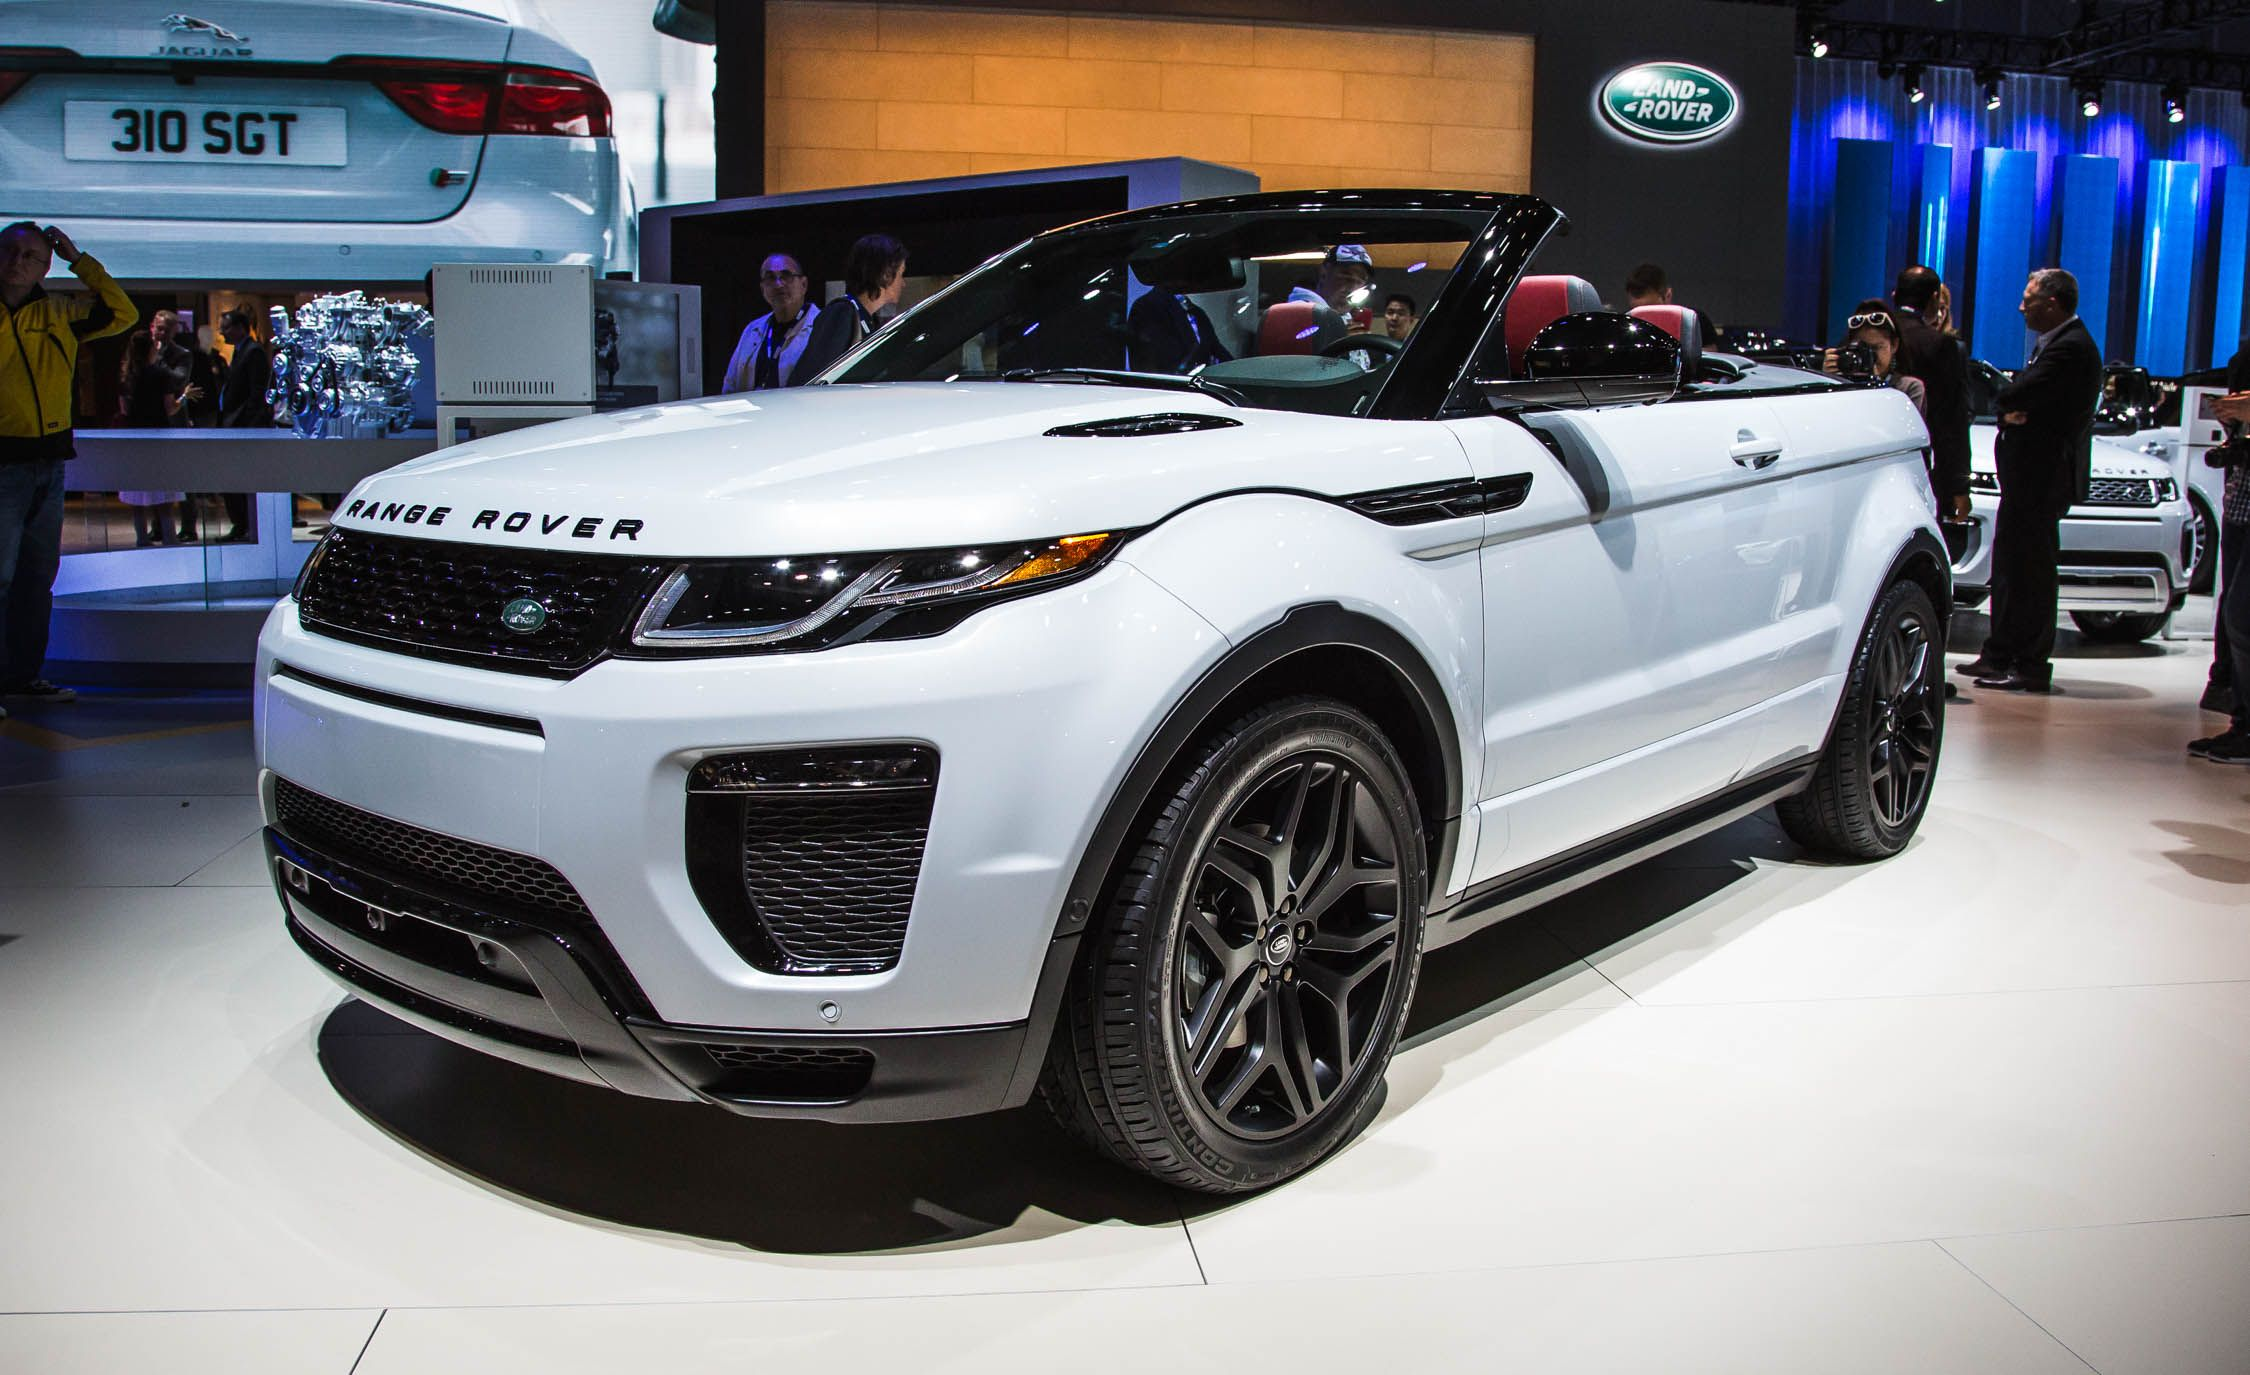 2017 Land Rover Range Rover Evoque Convertible s and Info